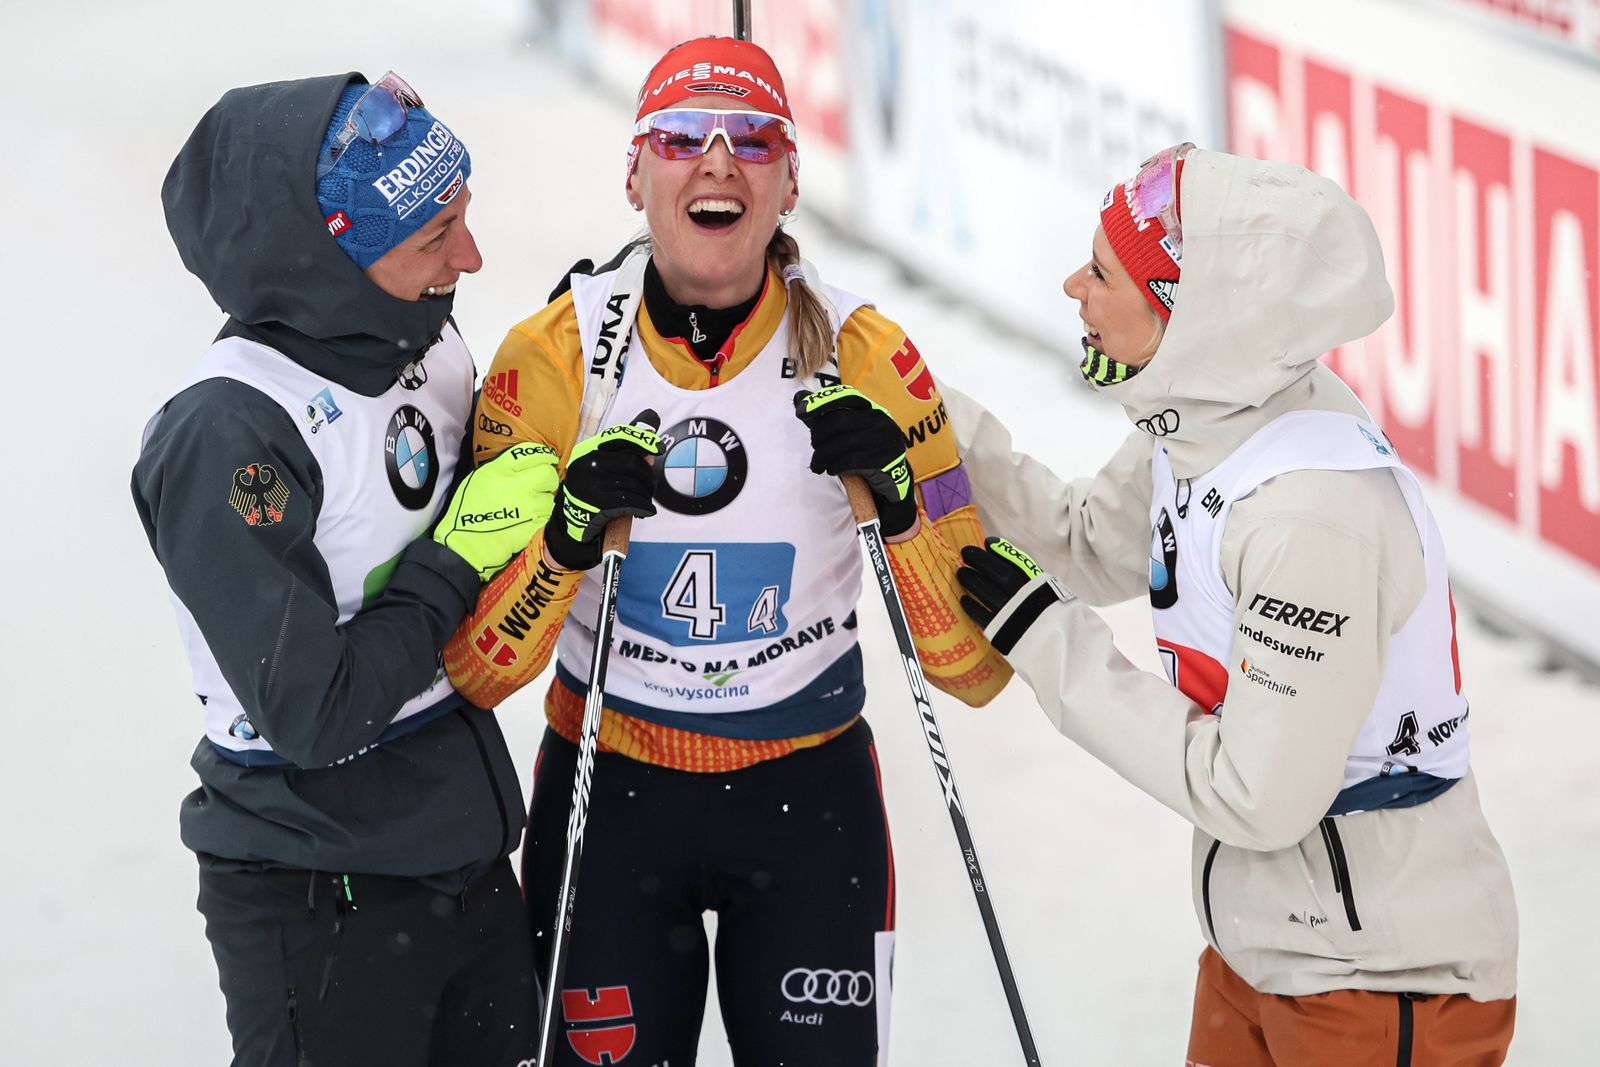 IBU Biathlon World Cup in Nove Mesto na Morave, Czech Republic - 07 Mar 2020